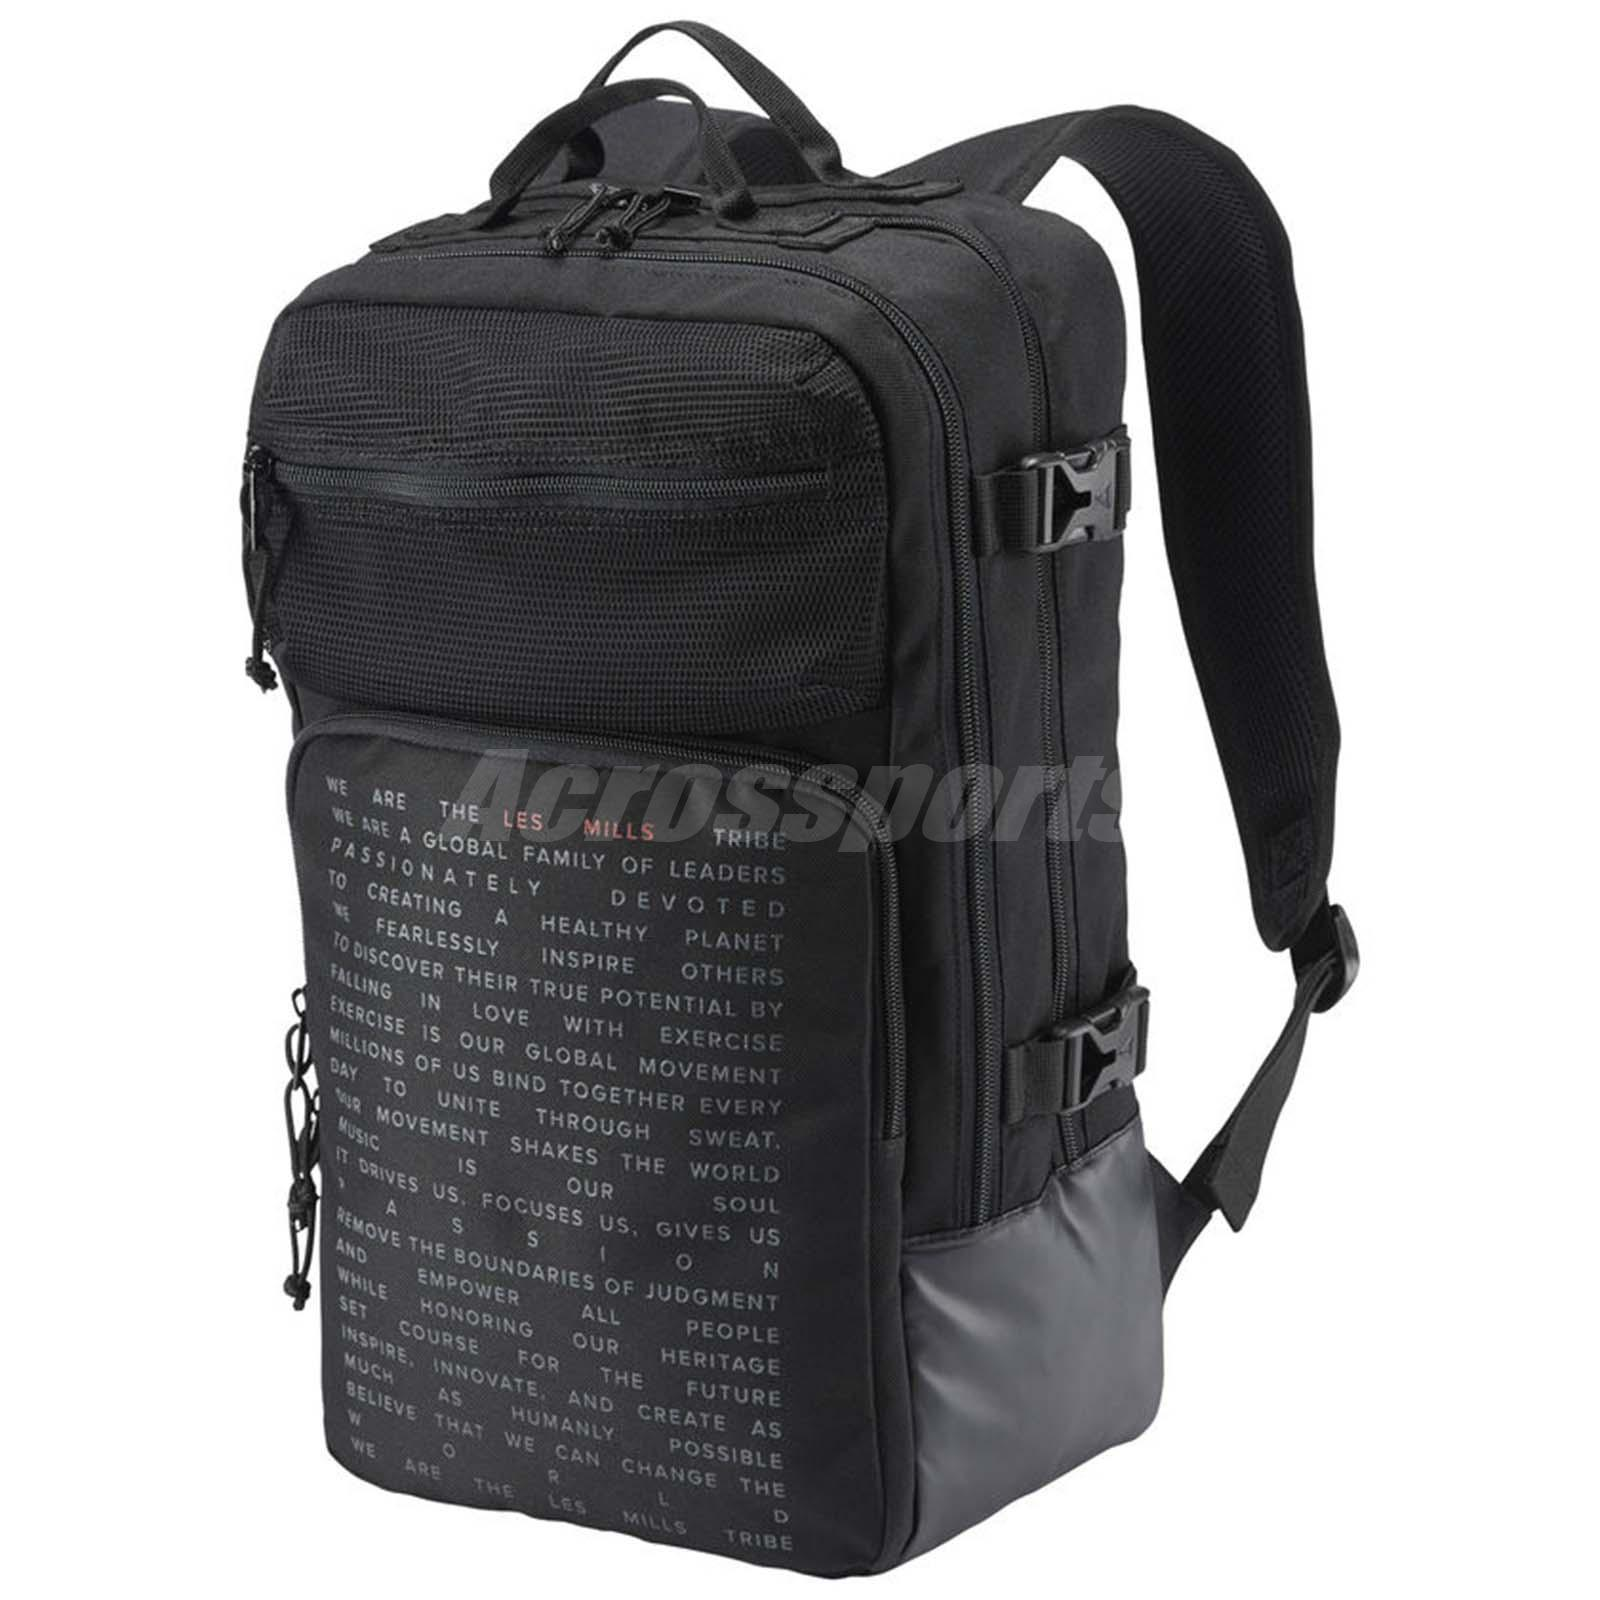 0dfd436f06 Details about Reebok Les Mills Backpack Training Workout Fitness Gym Bag  Sports Black DN5789